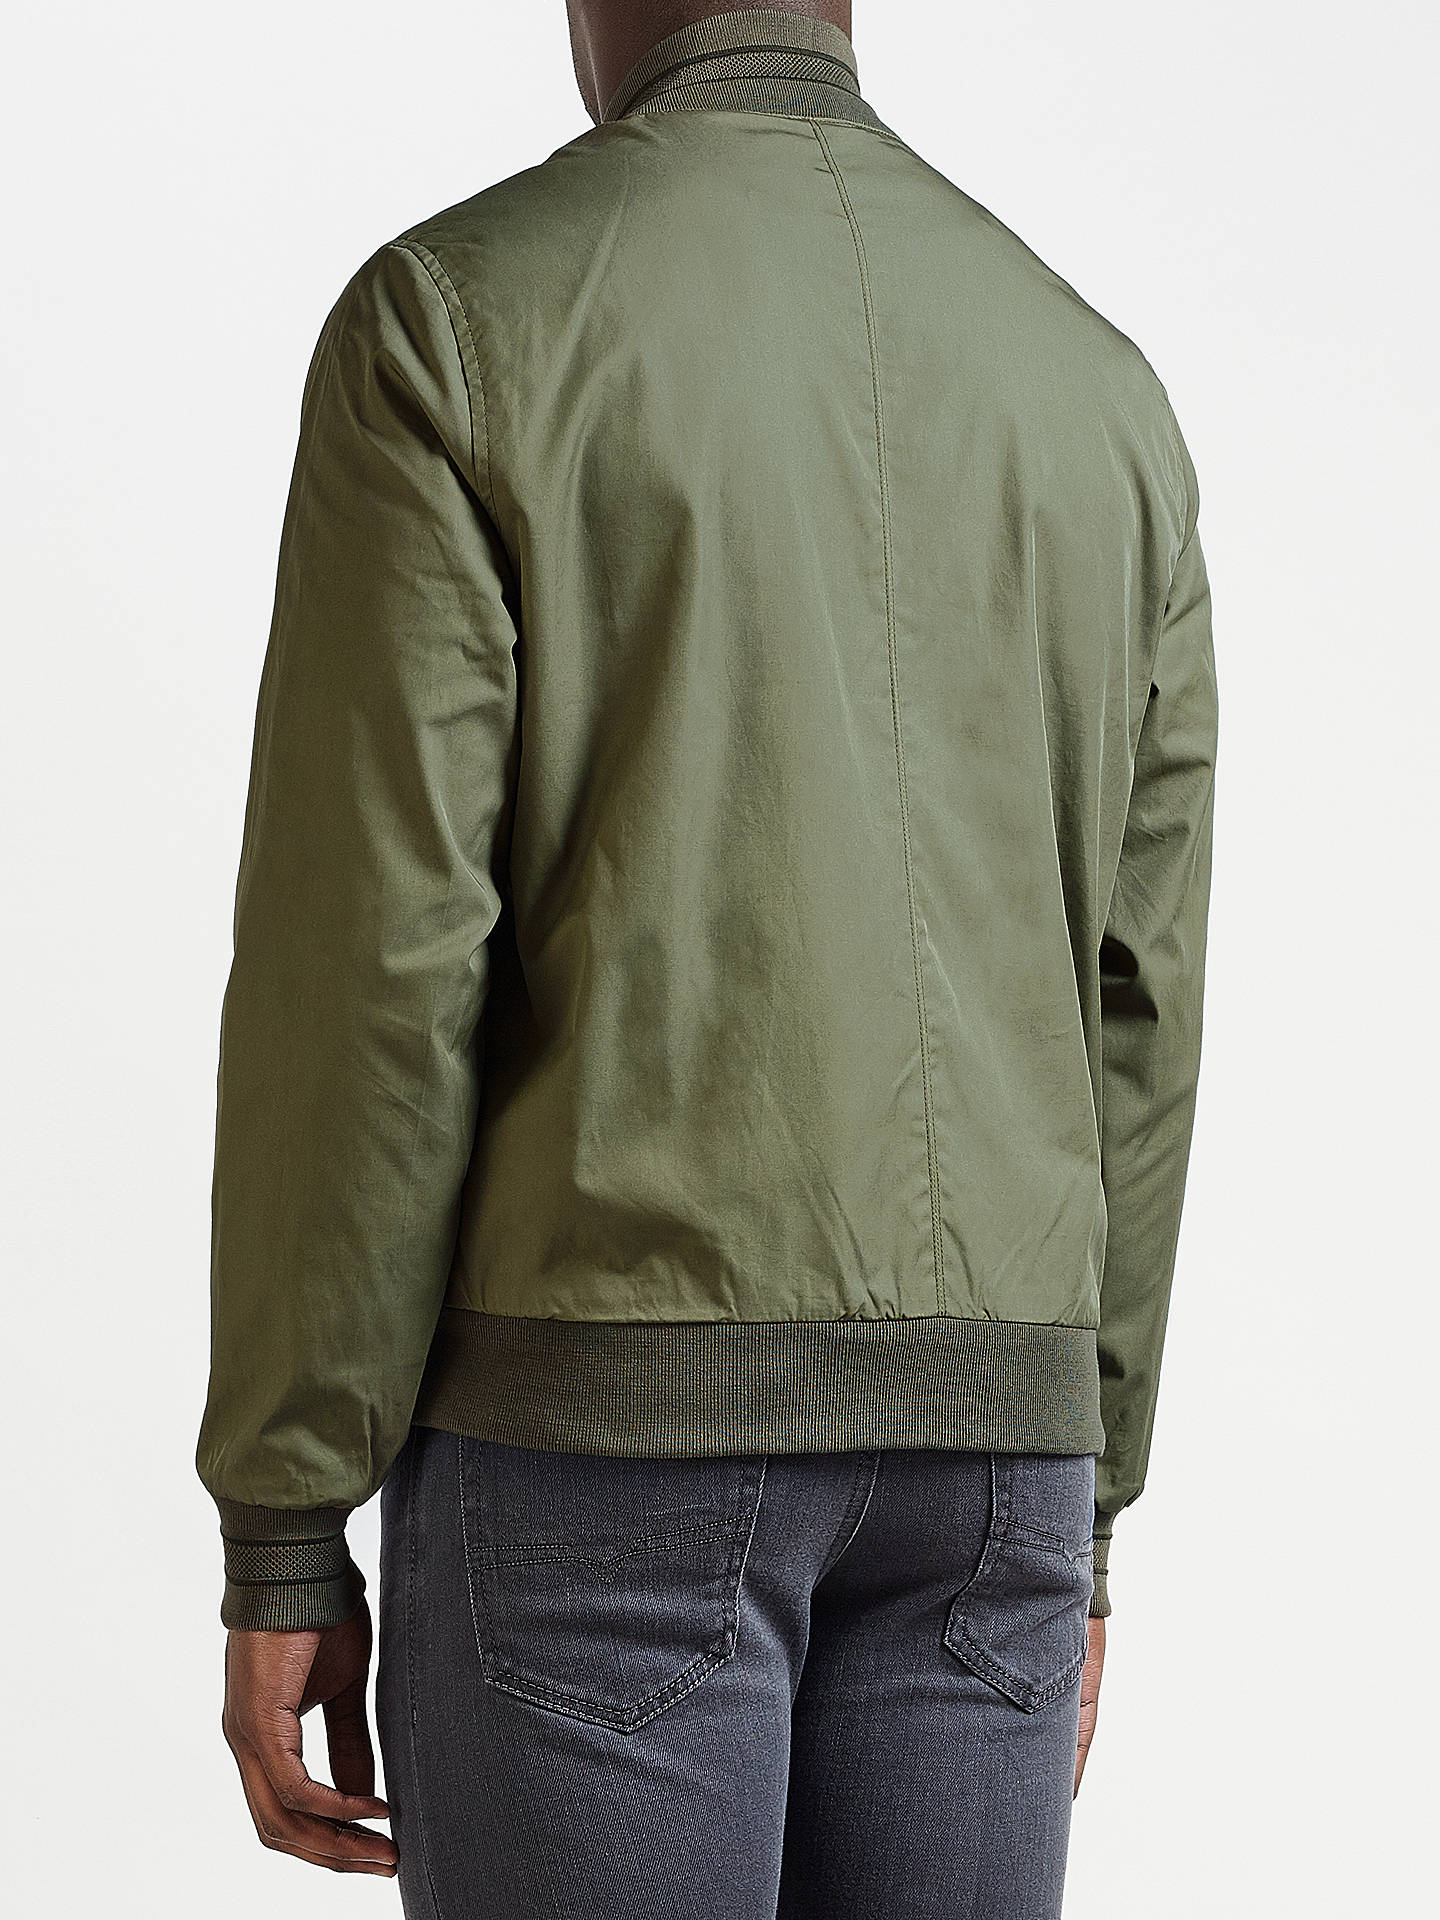 aa2884687 ... Buy Fred Perry Tramline Bomber Jacket